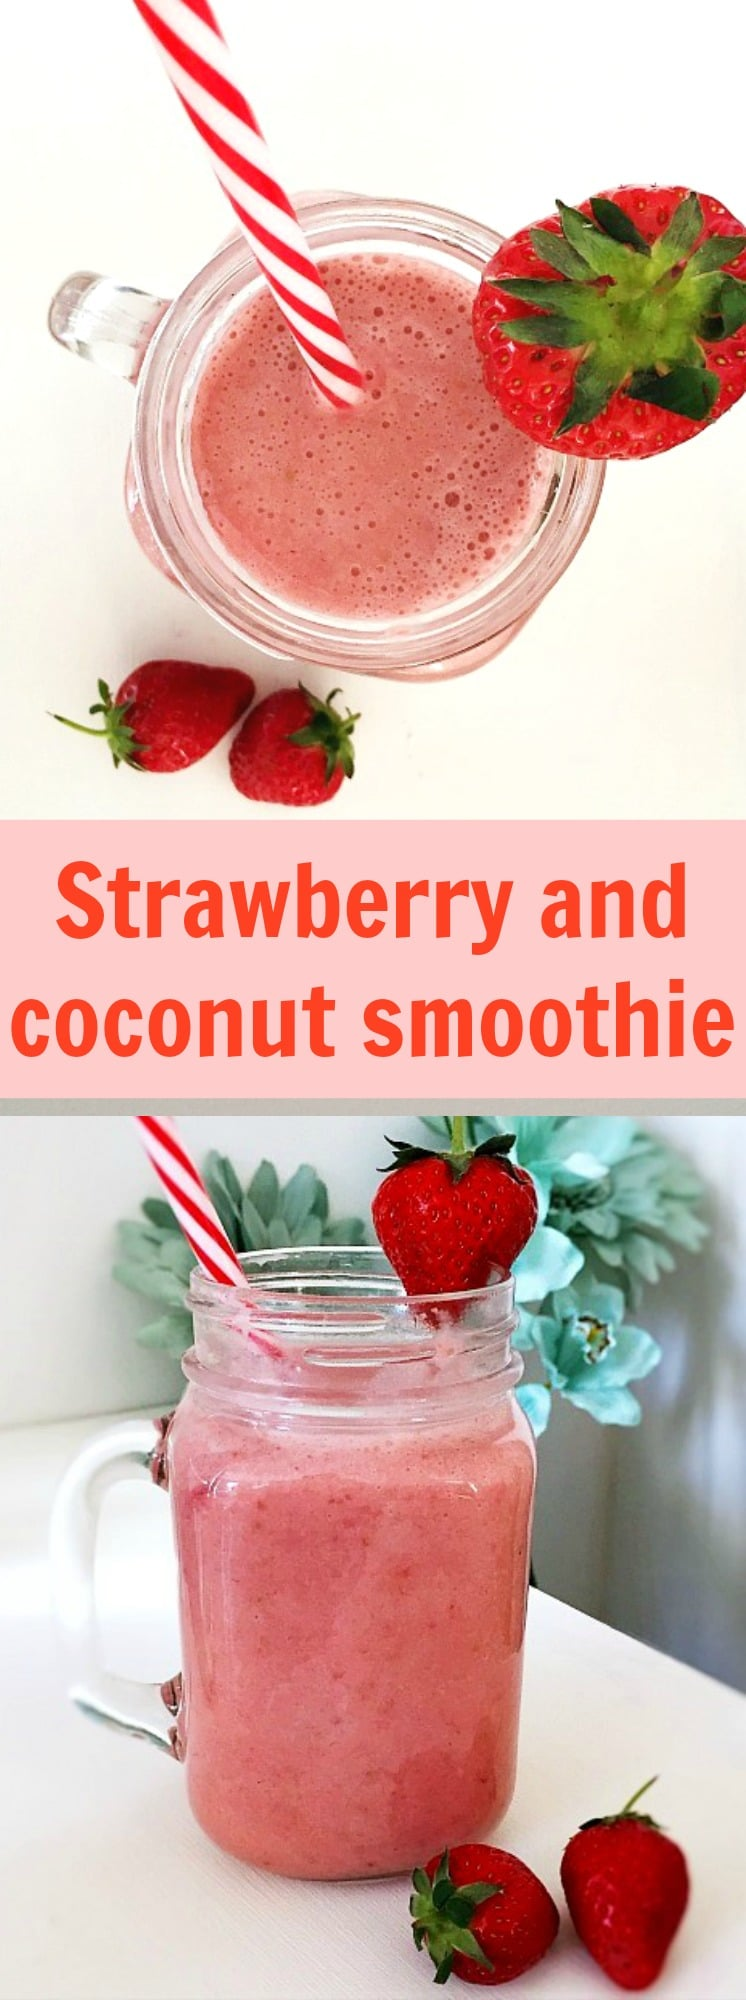 Strawberry Banana Coconut Milk Smoothie - My Gorgeous Recipes